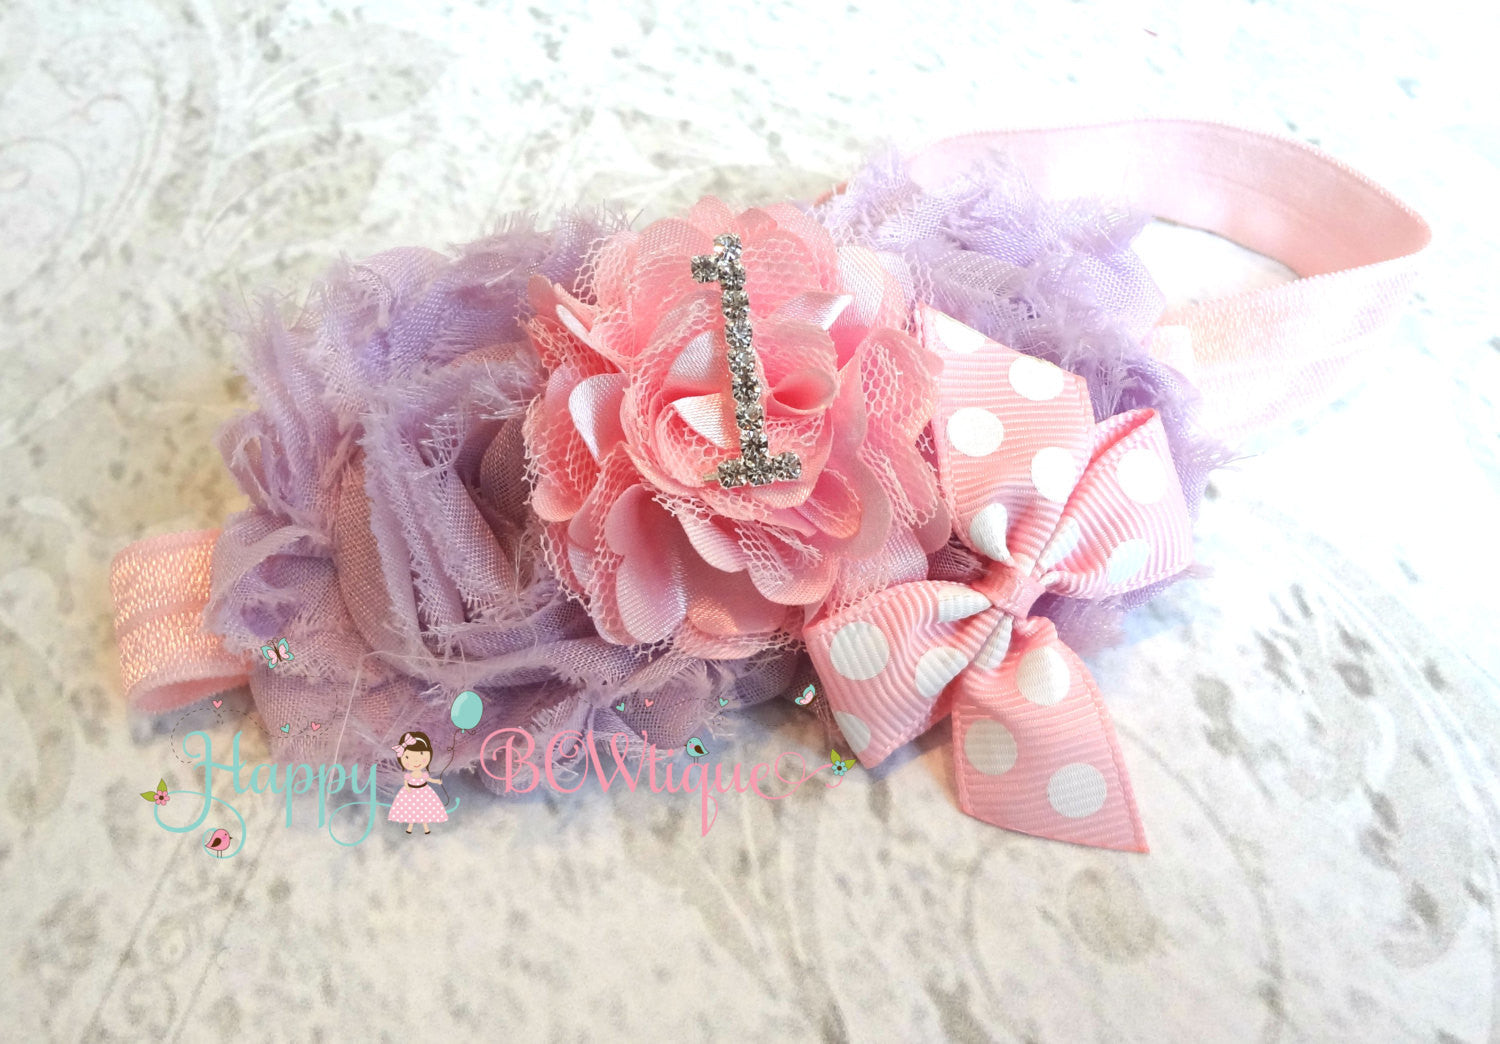 Baby 1st Birthday headband ~ Lavender Pink #1 Birthday Headband- Birthday #1- Happy BOWtique,